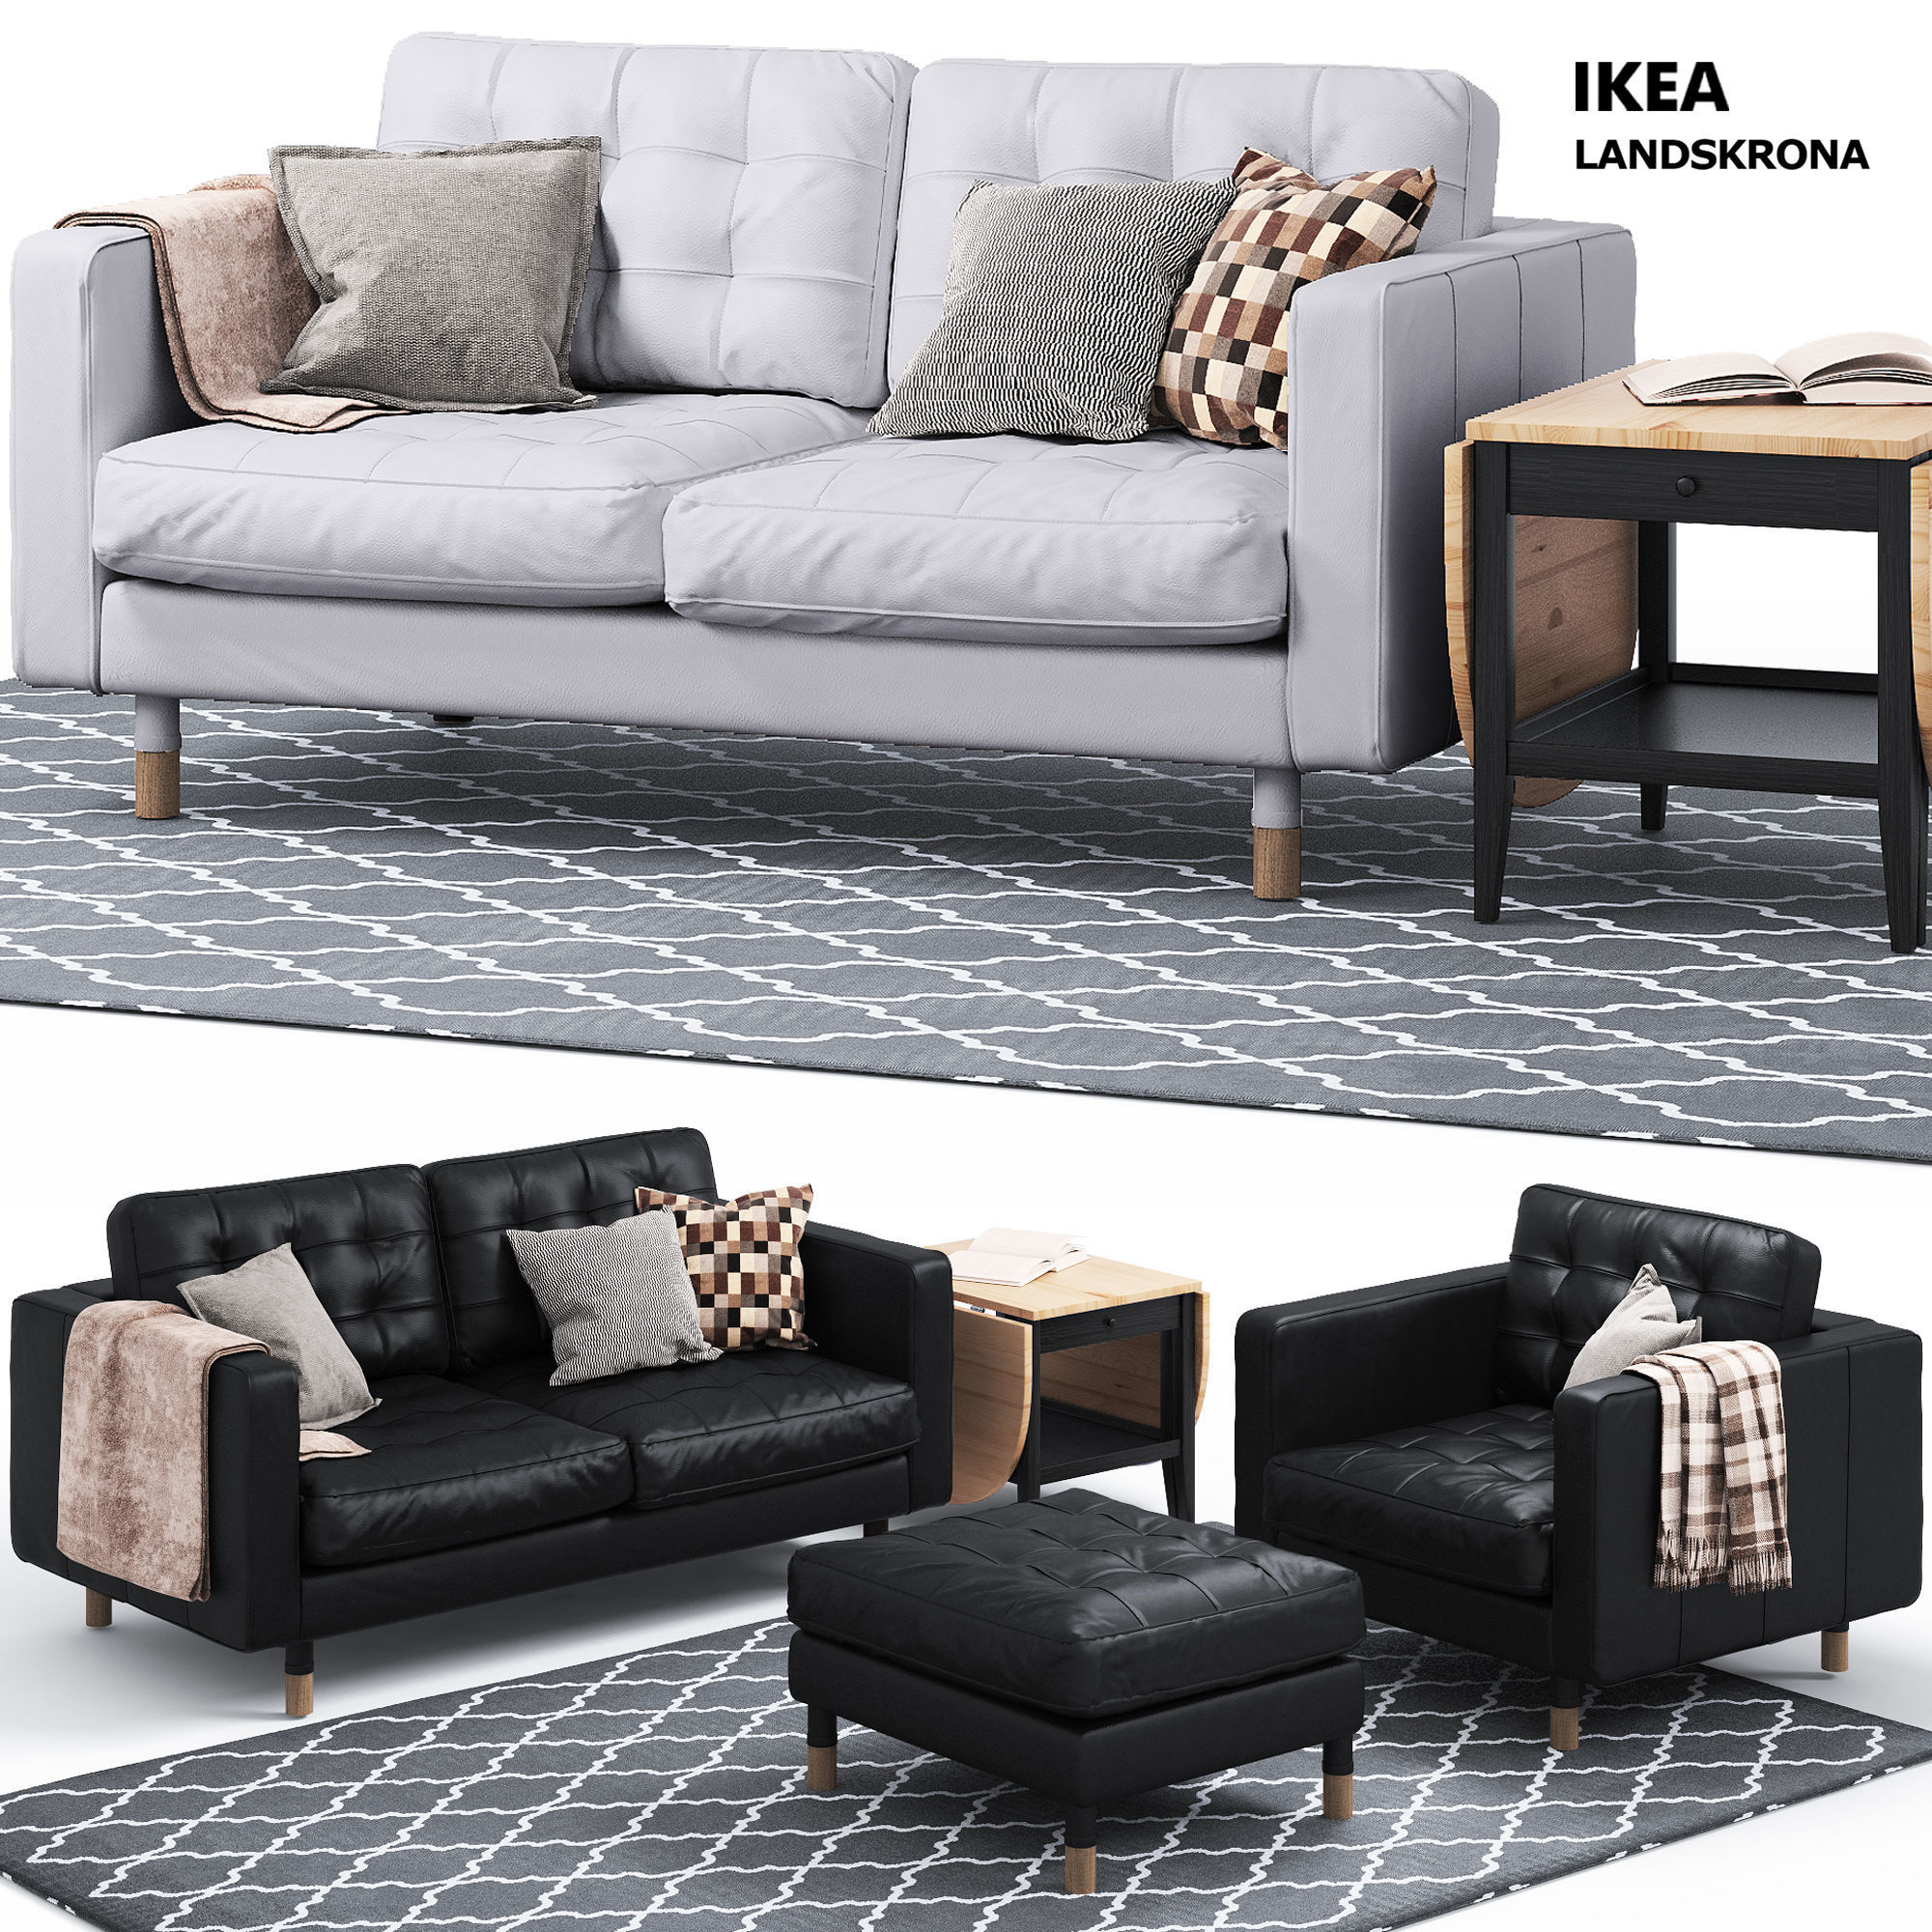 Superb Sofa And Chair Landskrona Series Ikea 3D Model Creativecarmelina Interior Chair Design Creativecarmelinacom